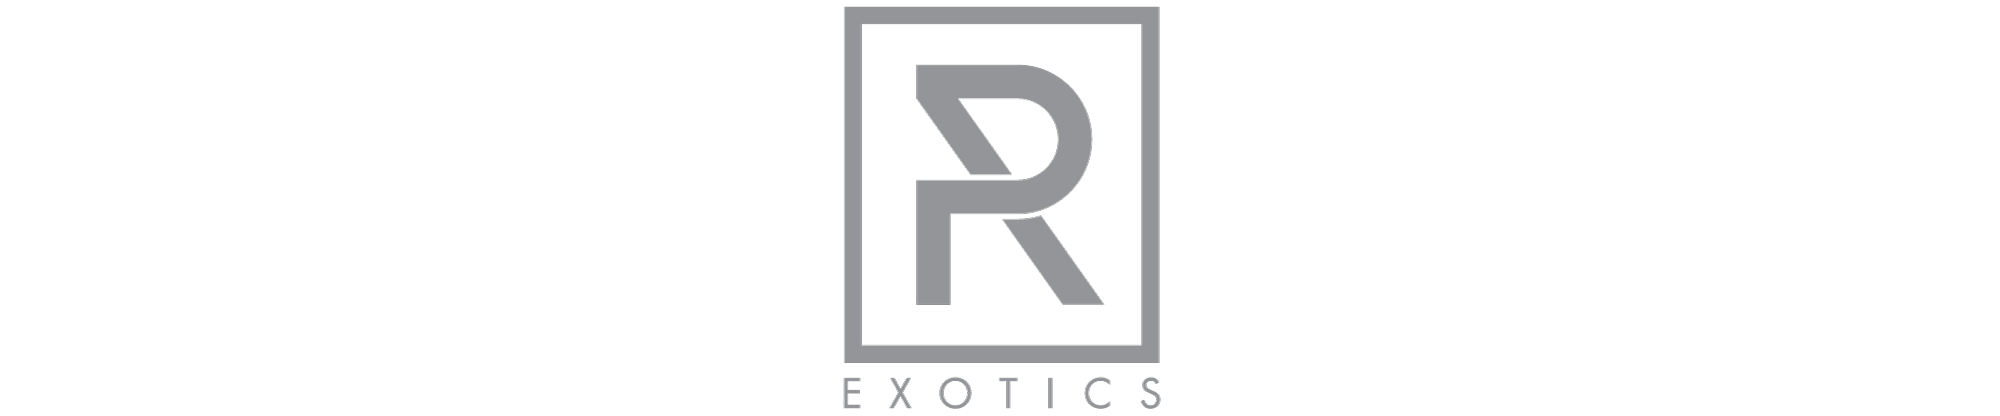 RP Exotics Auto Group strives to bring our customers the ultimate experience, whether it be through buying or selling their vehicles. Contact us today to find out about the many great services we offer!